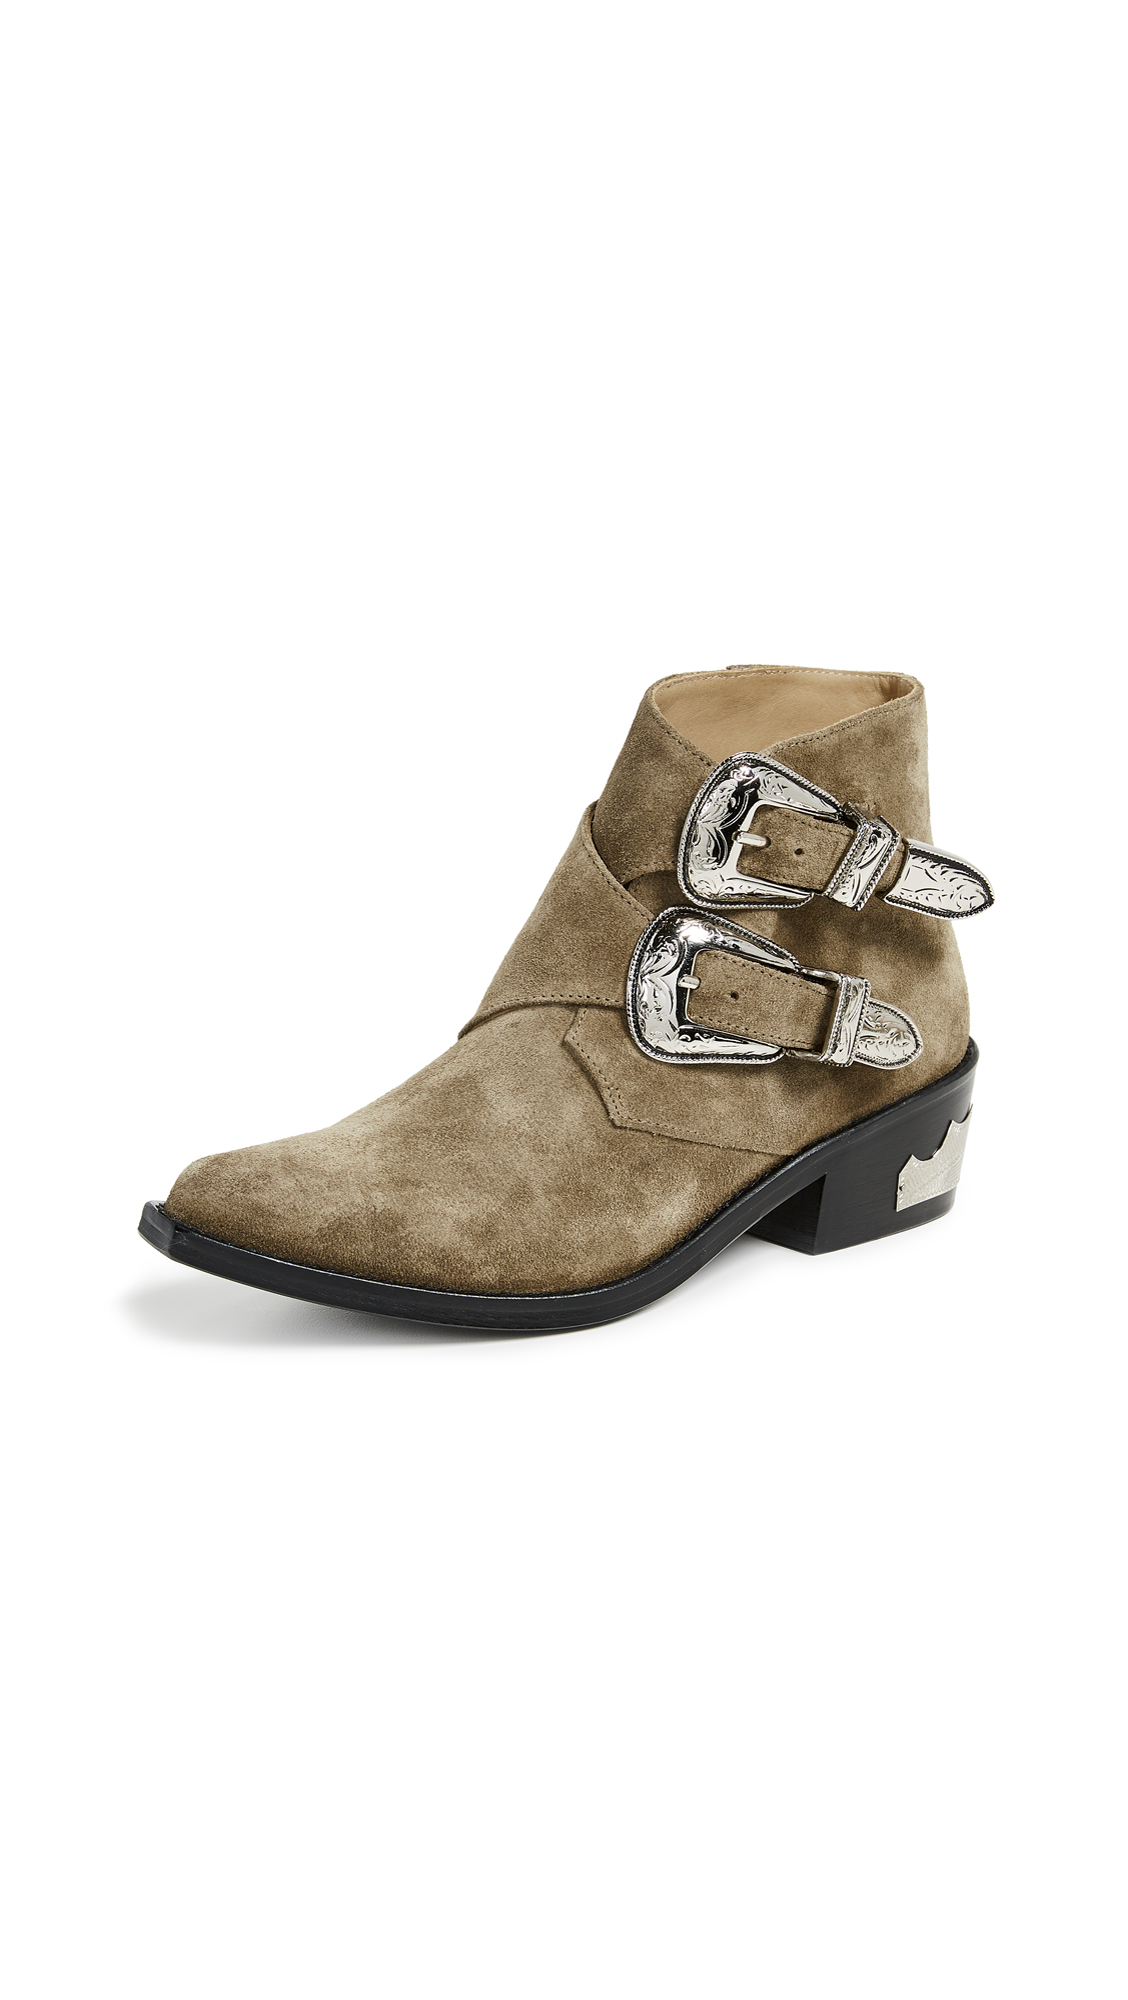 Toga Pulla Two Band Buckle Boots - Khaki